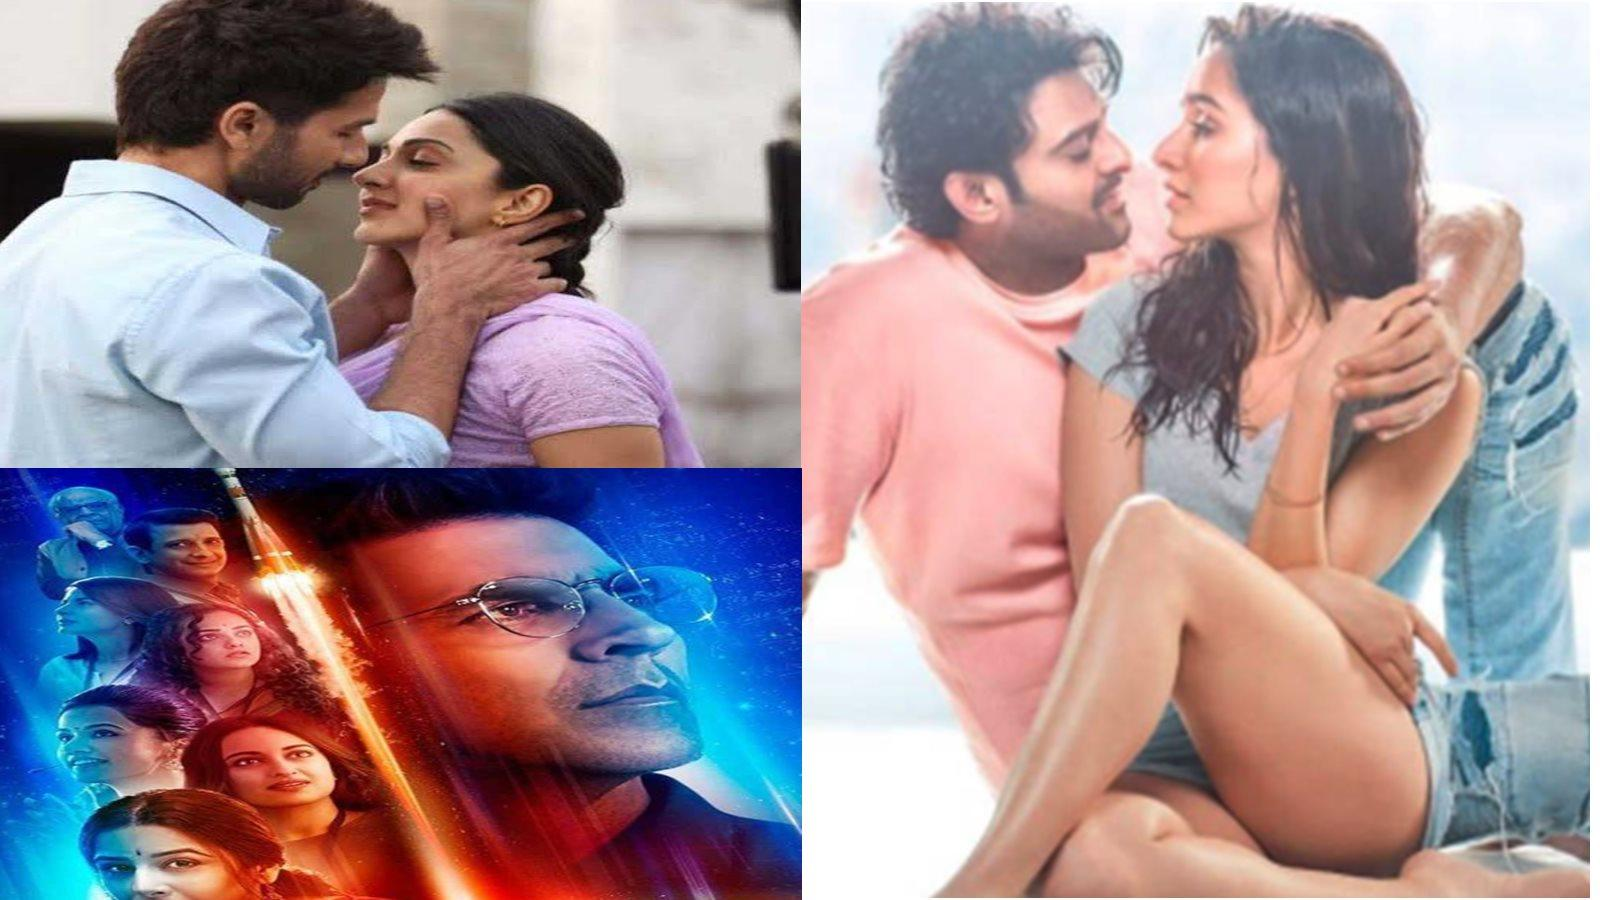 'Saaho' starring Prabhas and Shraddha Kapoor has the best Sunday of 2019, leaves behind  'Kabir Singh', 'Mission Mangal' and 'Bharat'